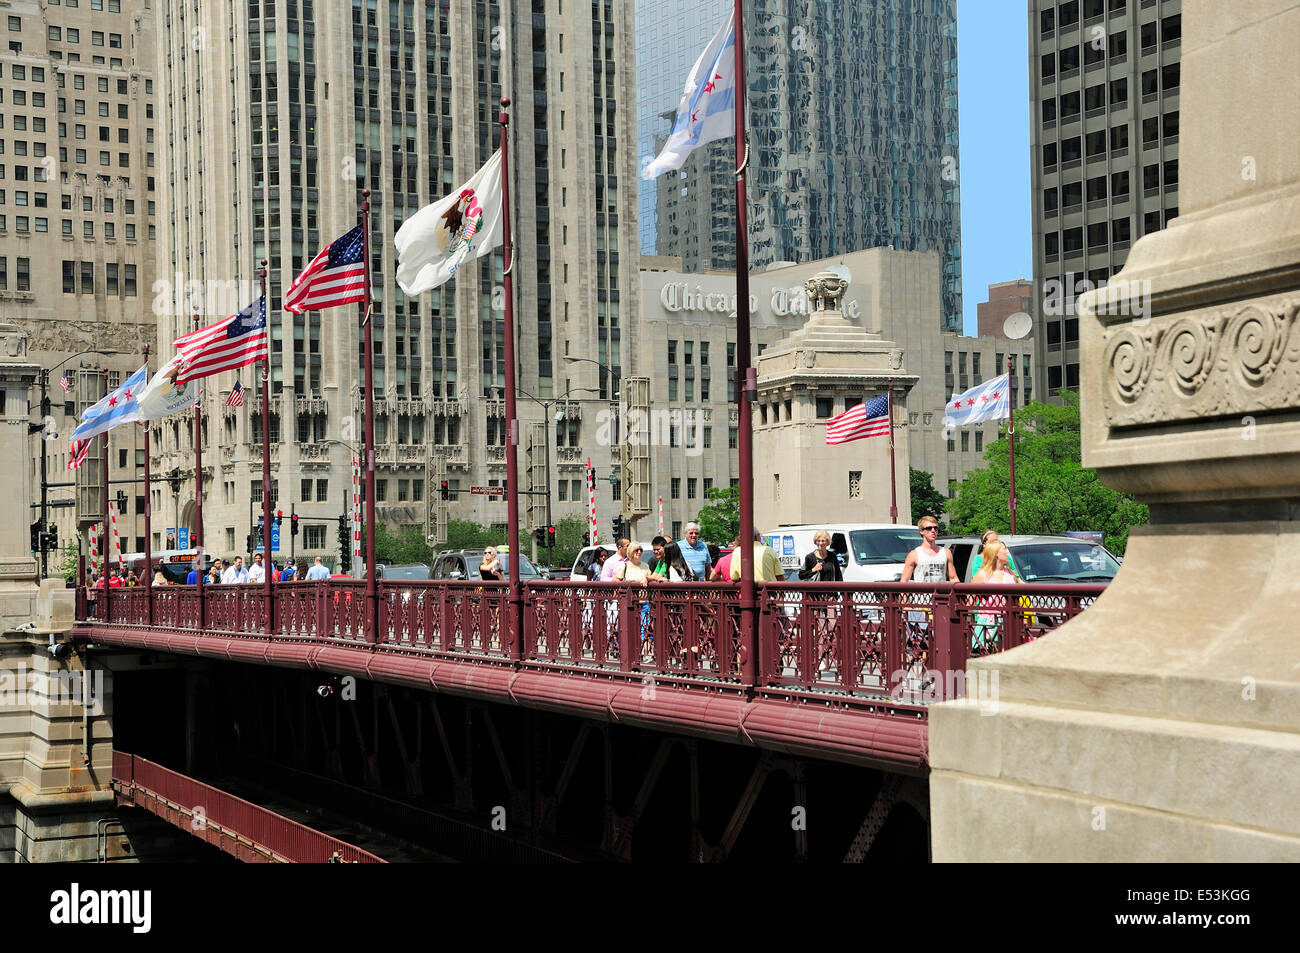 People crossing the DuSable bridge over the Chicago River. - Stock Image